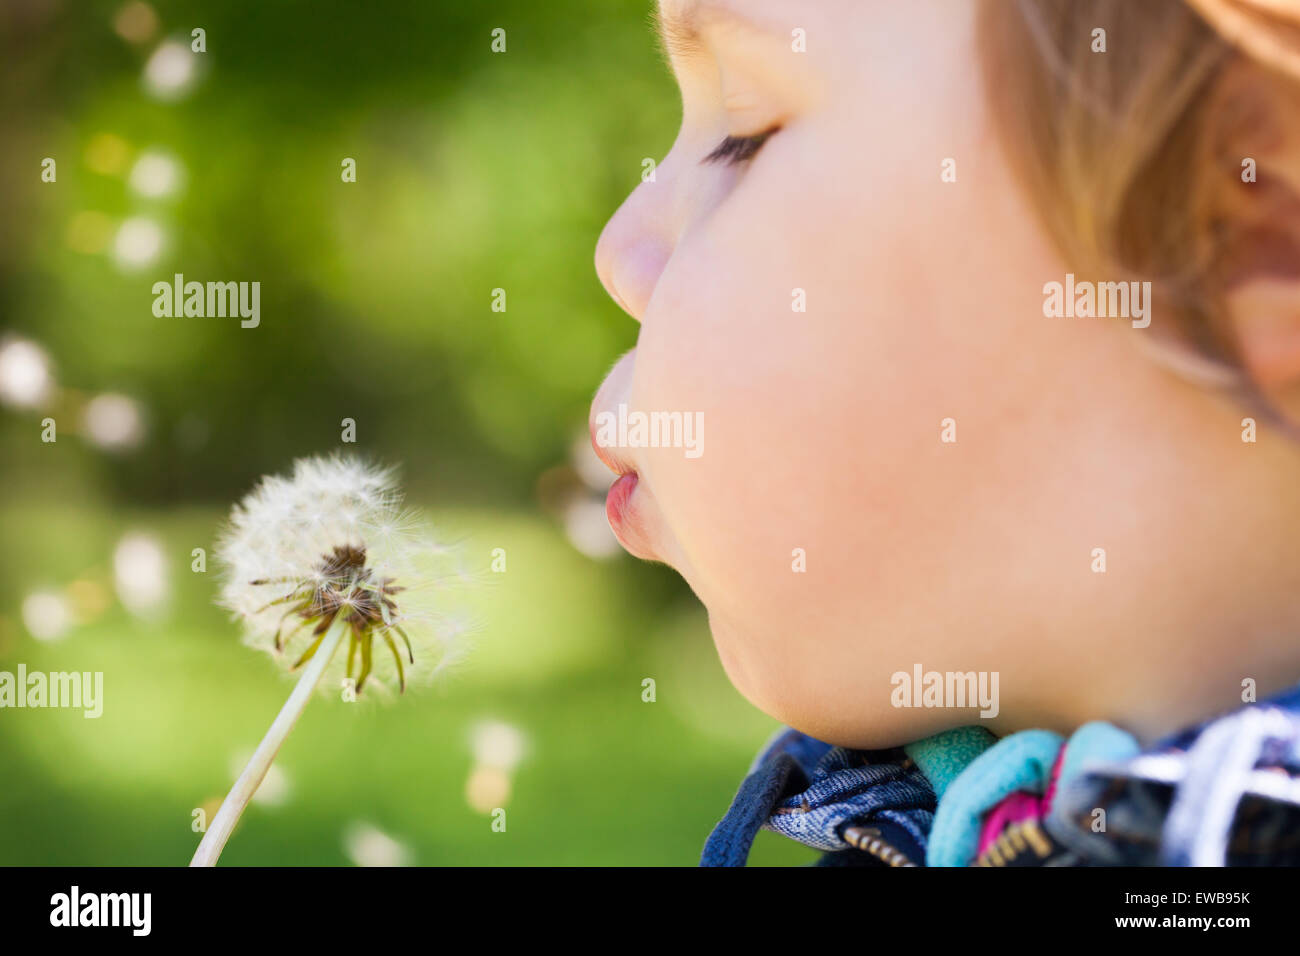 Caucasian blond baby girl blows on a dandelion flower in a park, selective focus on lips - Stock Image